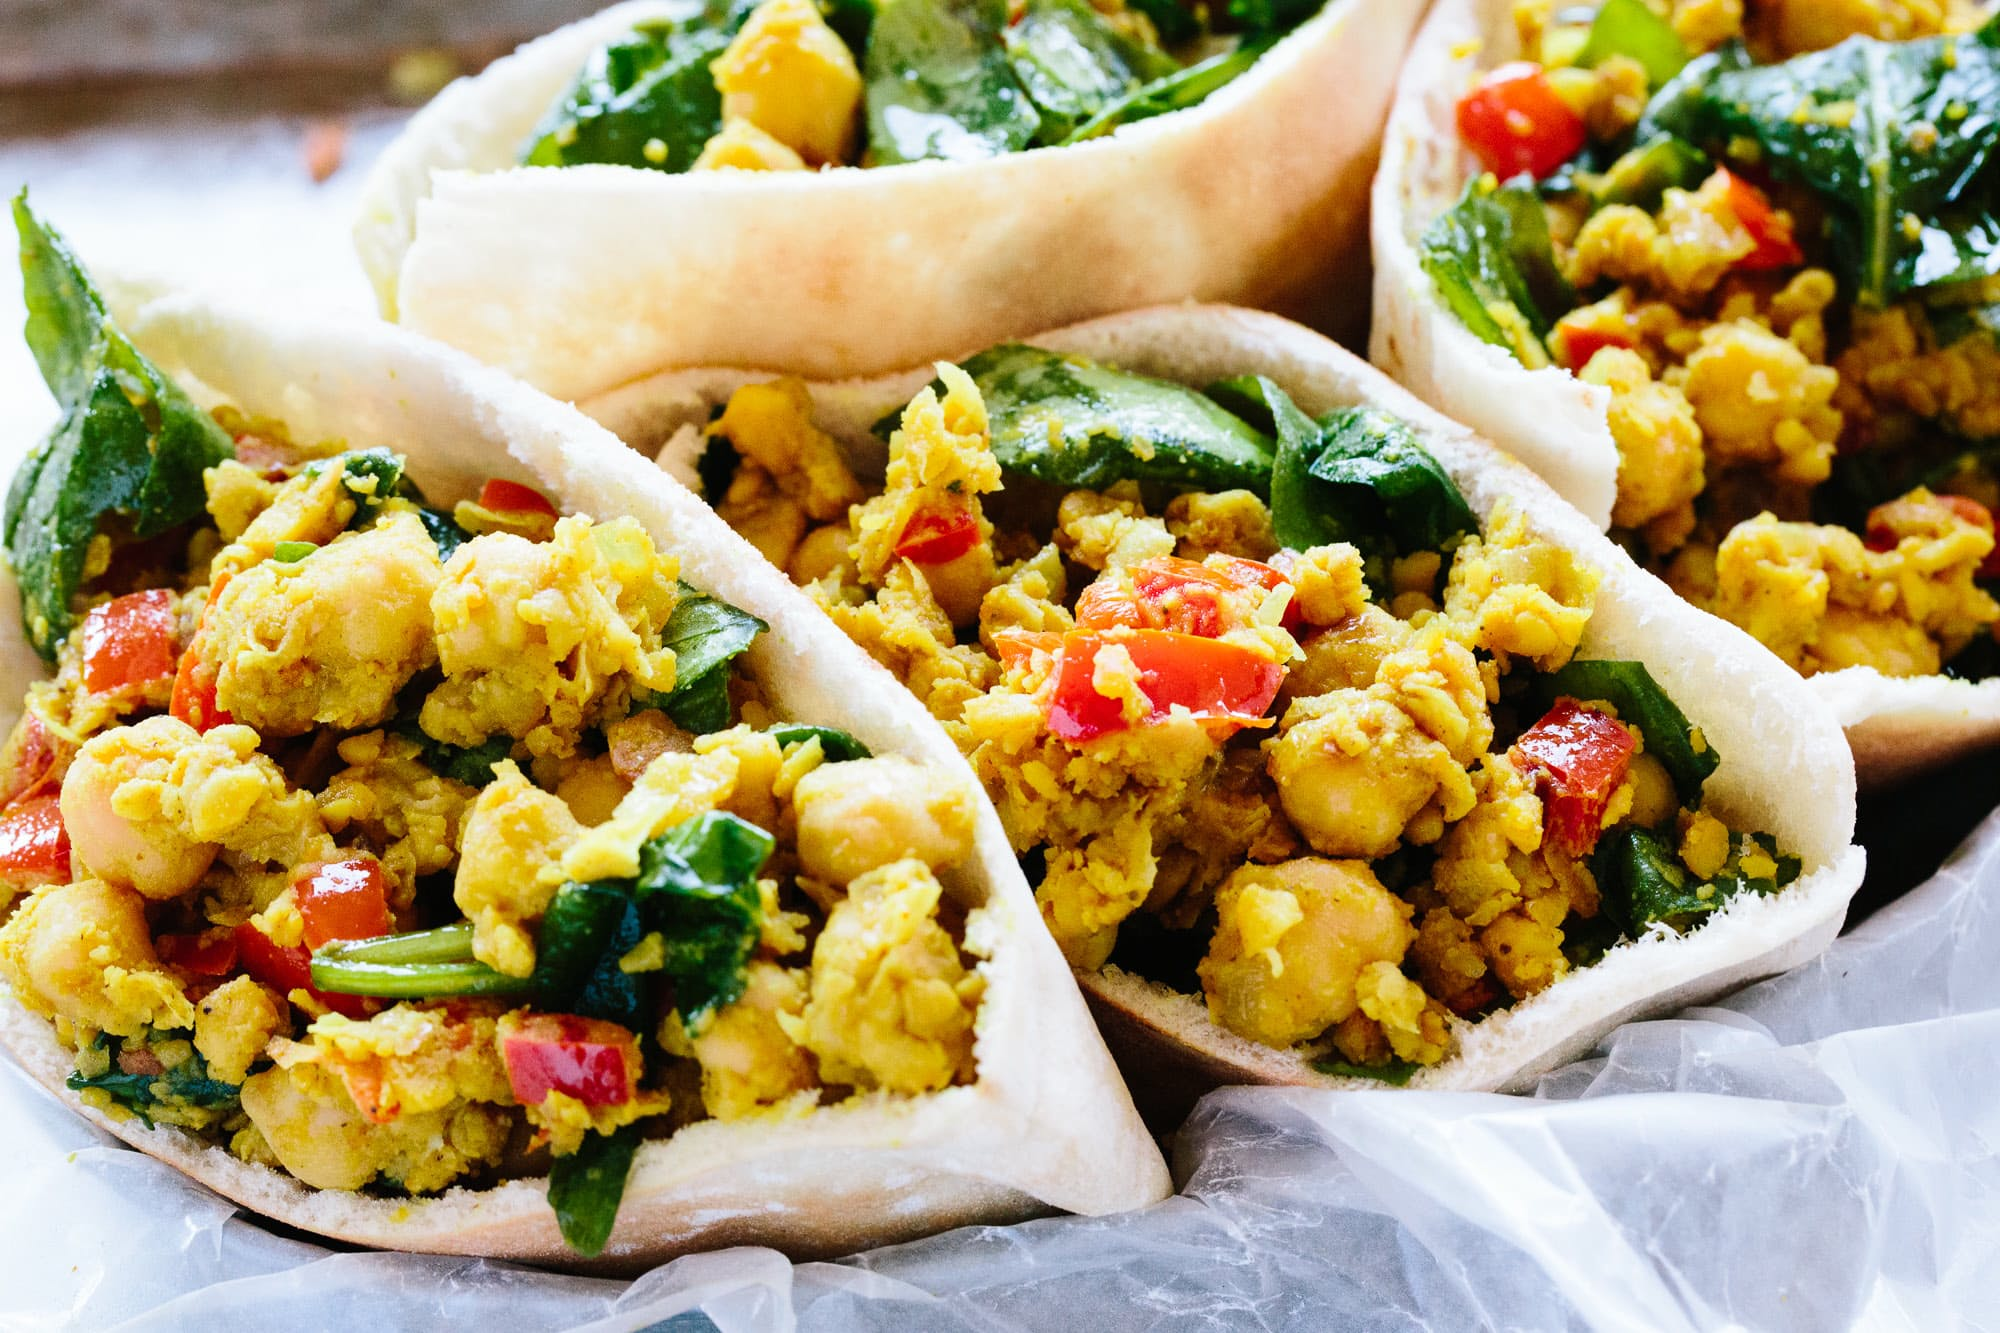 Curried Chickpea & Spinach Baked Potato